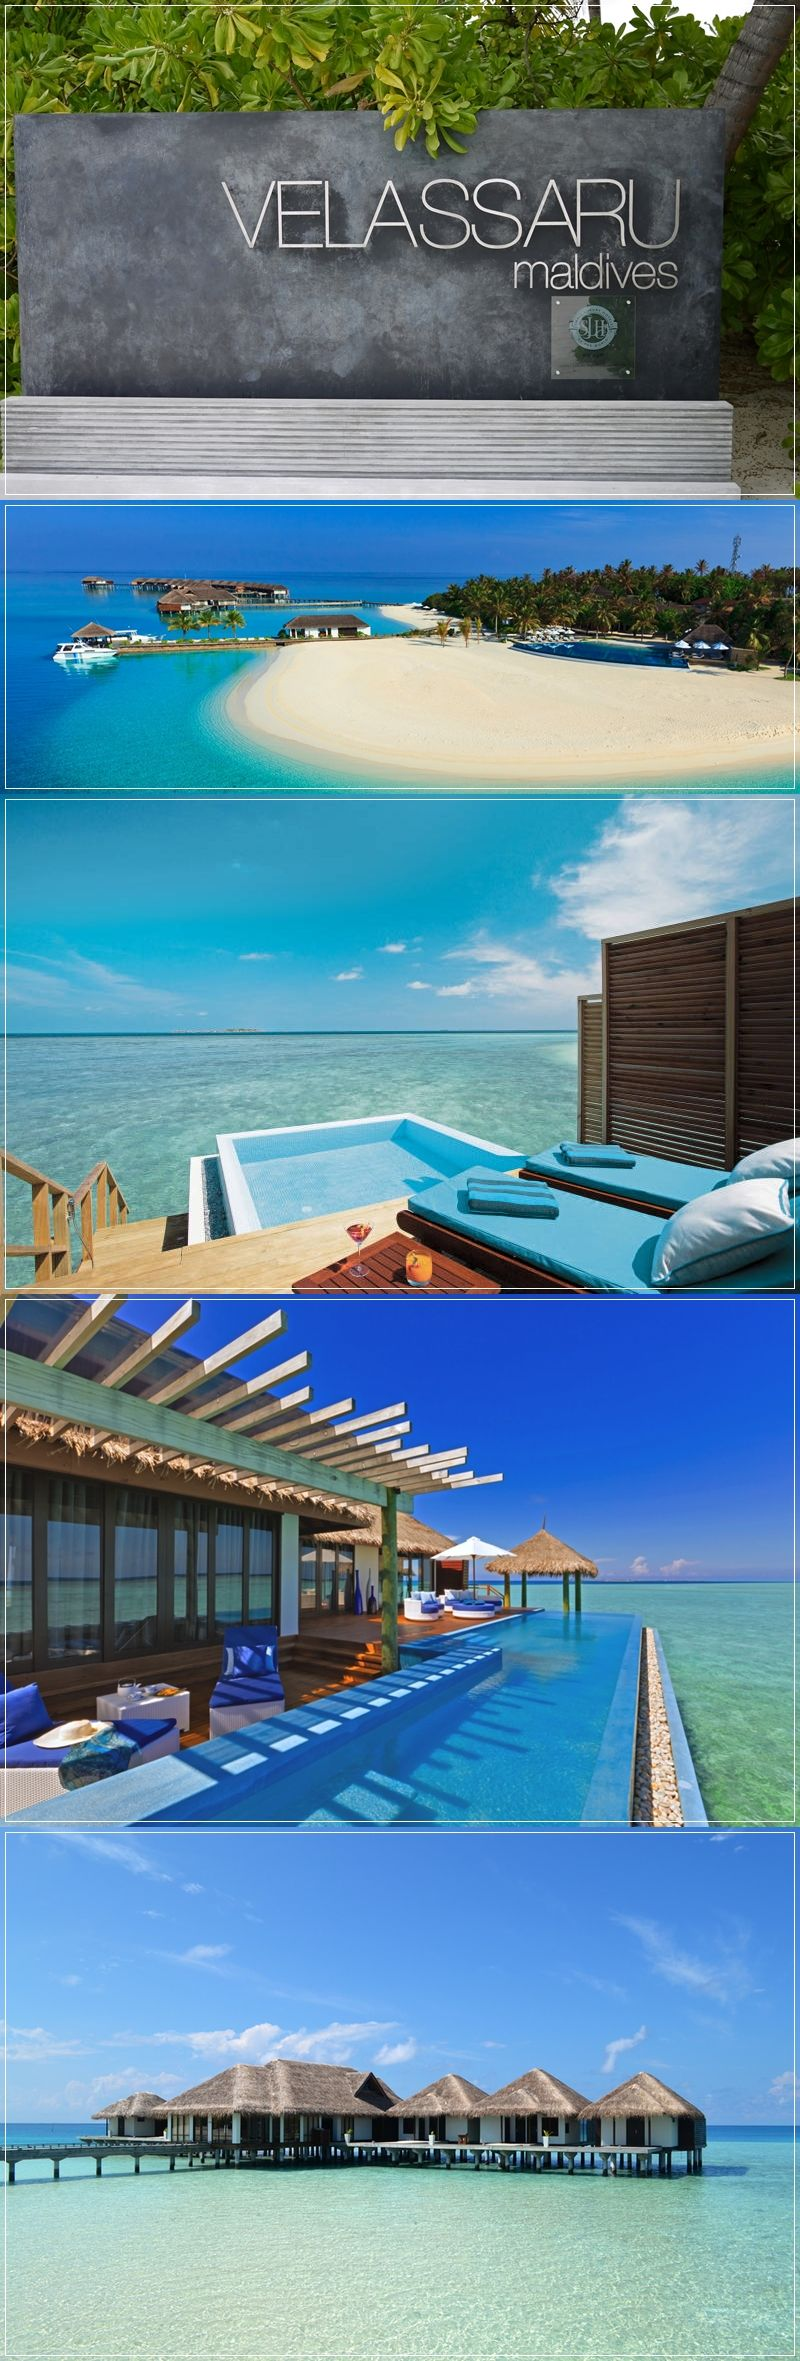 Velassaru Resort is nominated as one of the best luxury resort for vacation. Come and experience the Luxury Resort of Velassaru Resort at Maldives.